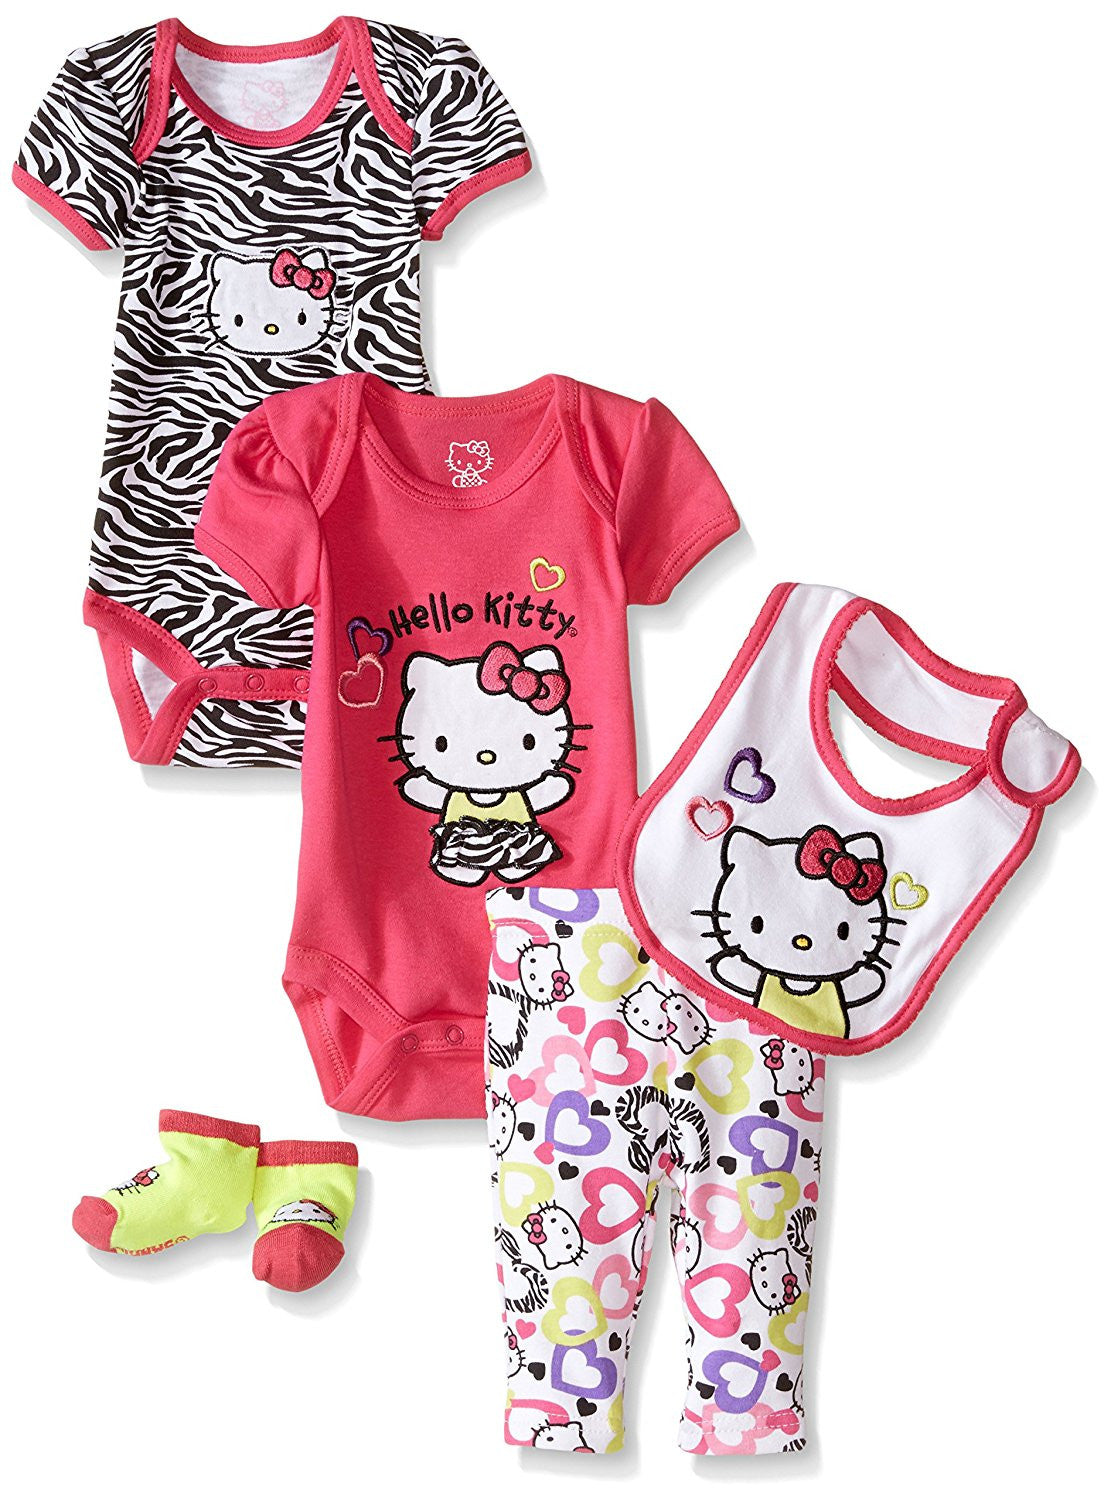 825211a2b Hello Kitty Baby Girls' 5 Piece Gift Set with Zebra Heart Print – Munchkinz